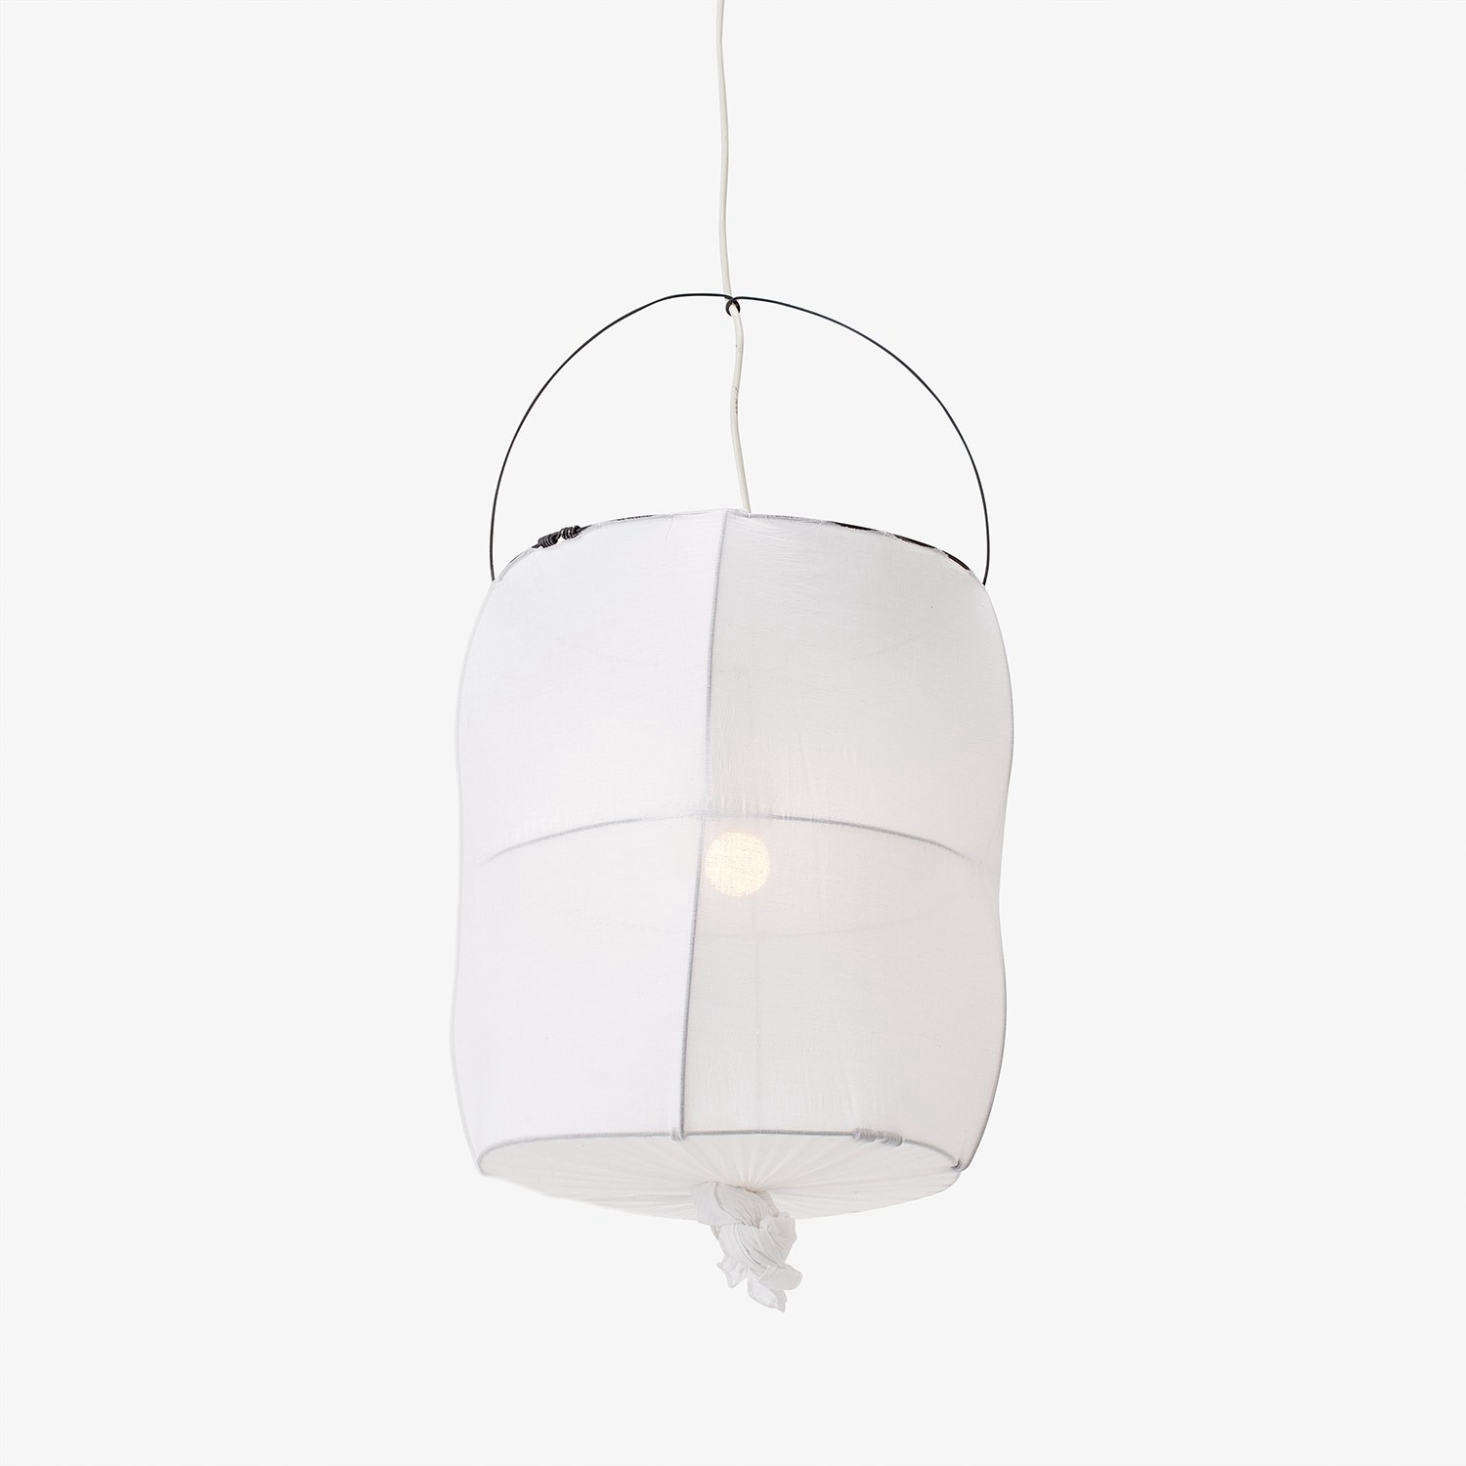 The cotton Koushi Lamp, handmade in Paris, is currently on sale for $396 at ABC Carpet & Home. (For a DIY version, see DIY: Koushi Lamp by Mark Eden Schooley.)